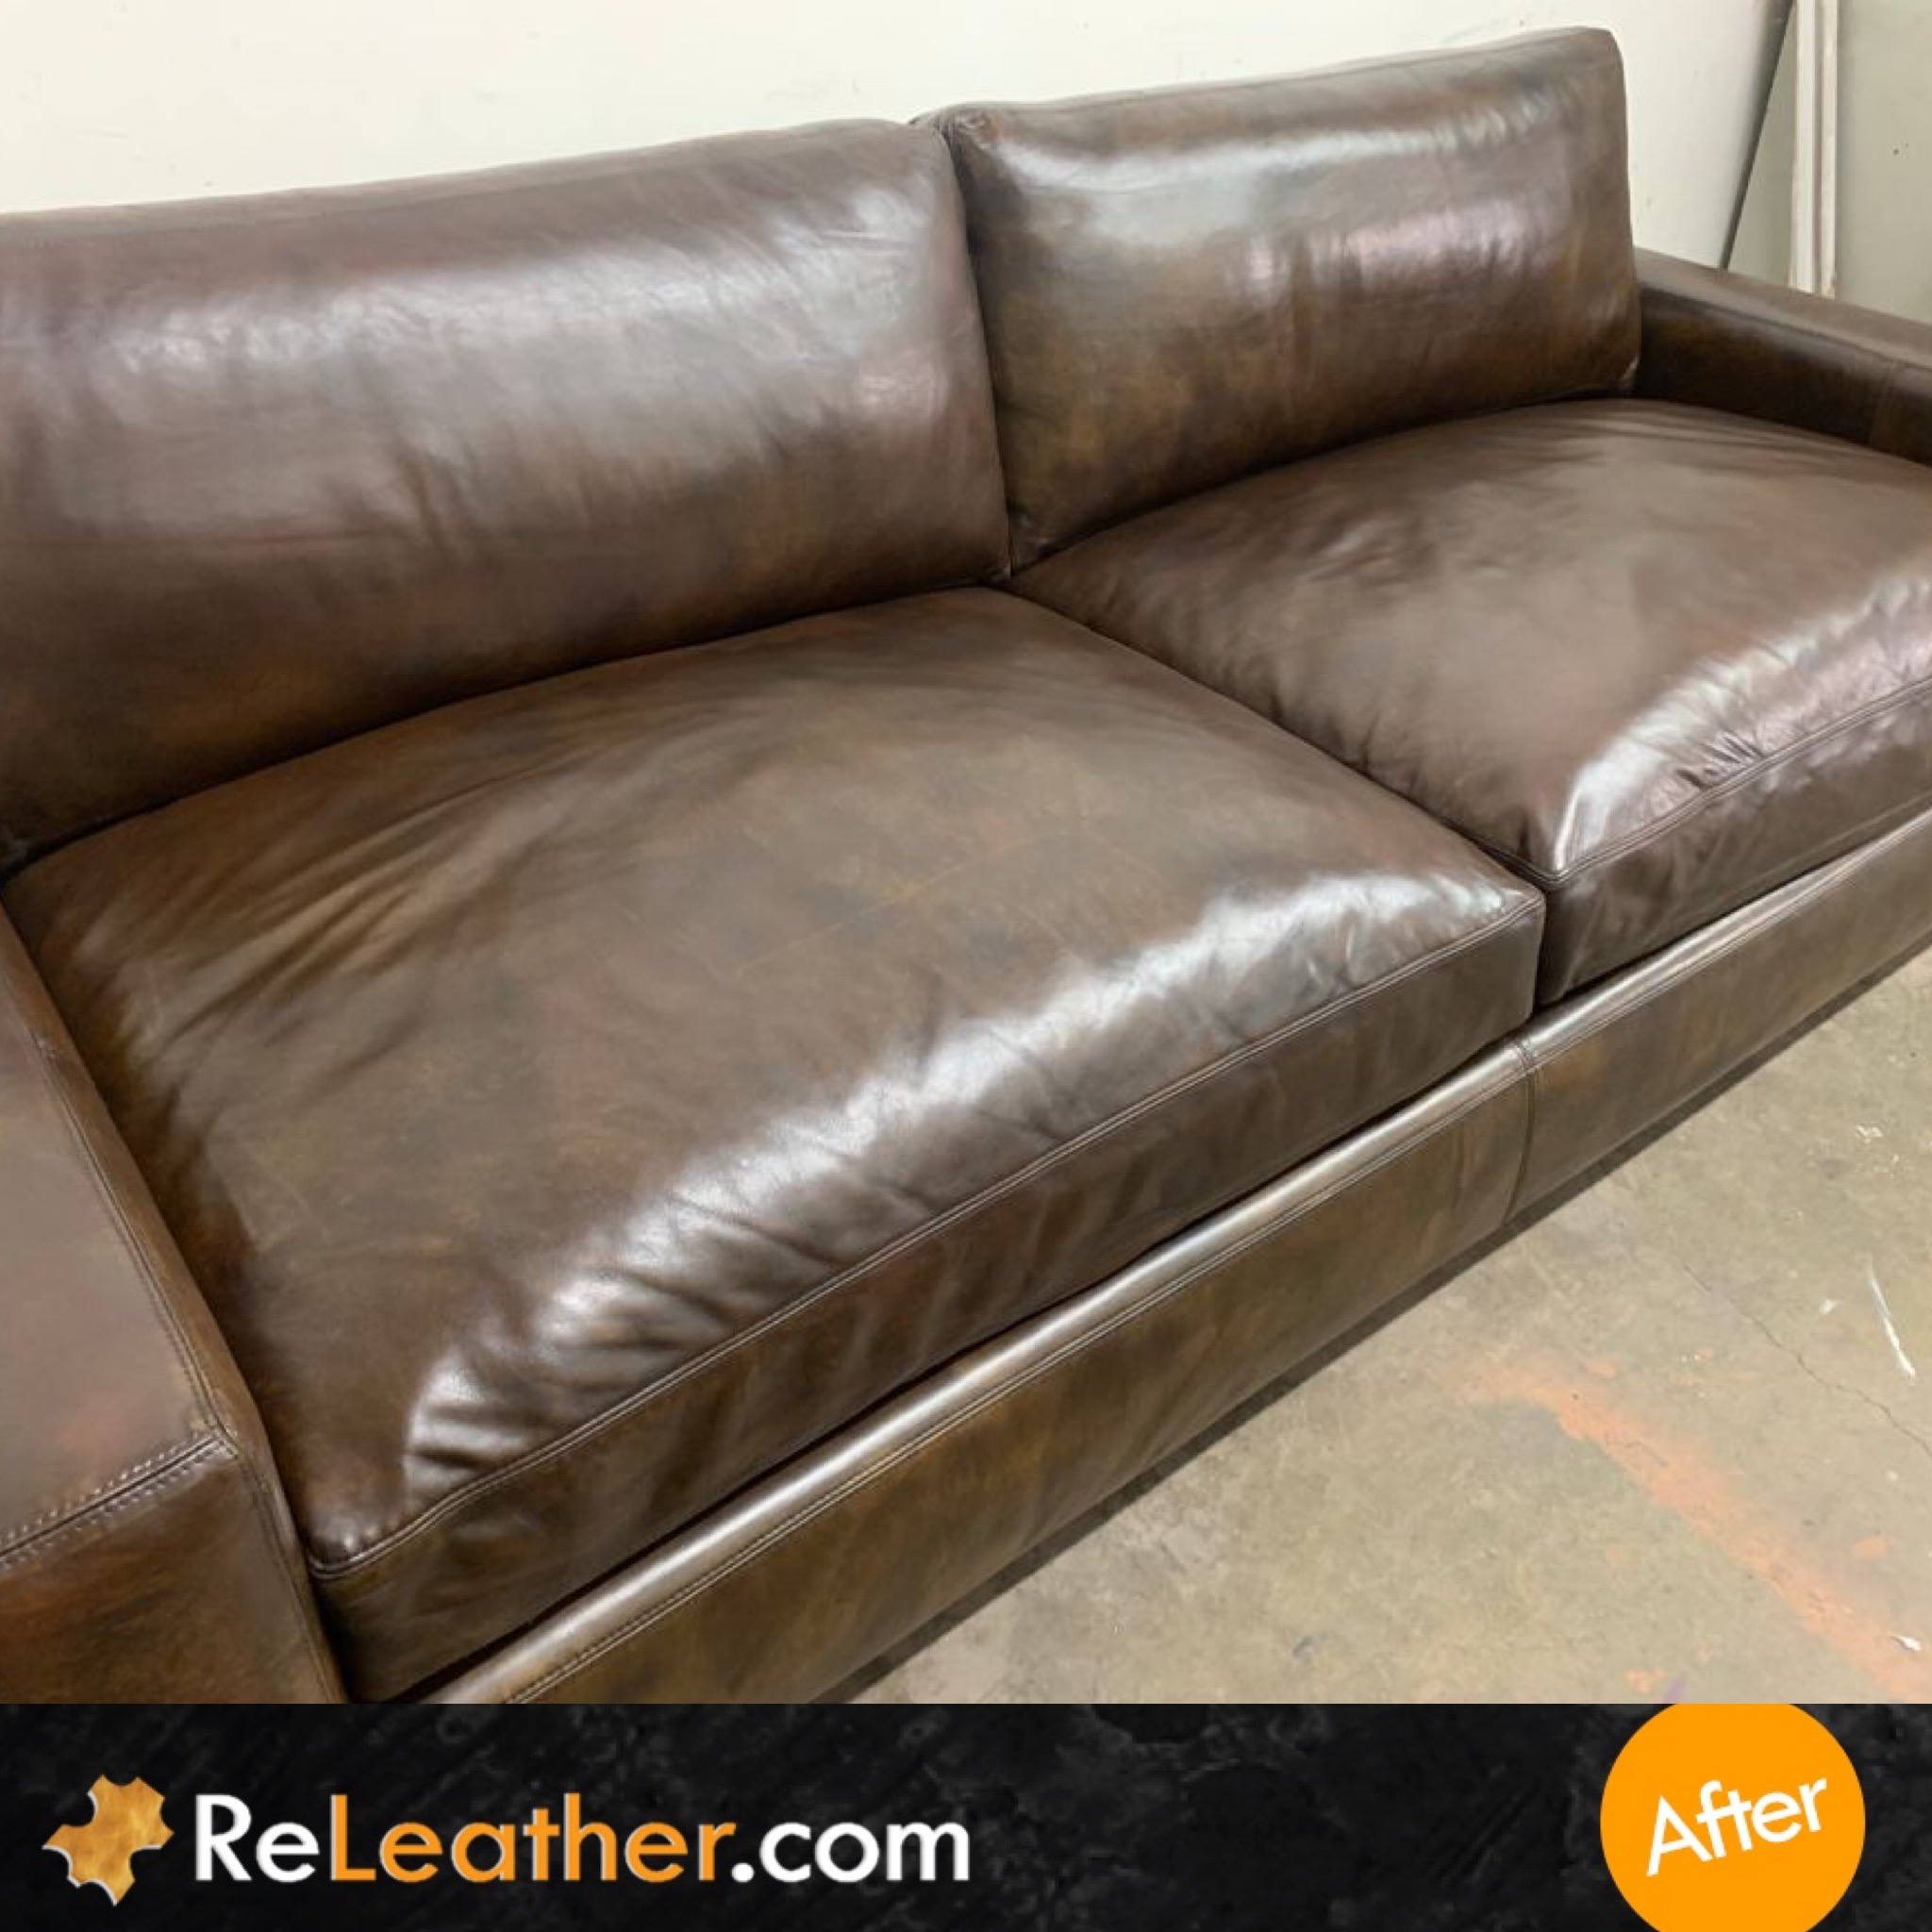 After Picture of Leather Cleaning Sofa in San Diego